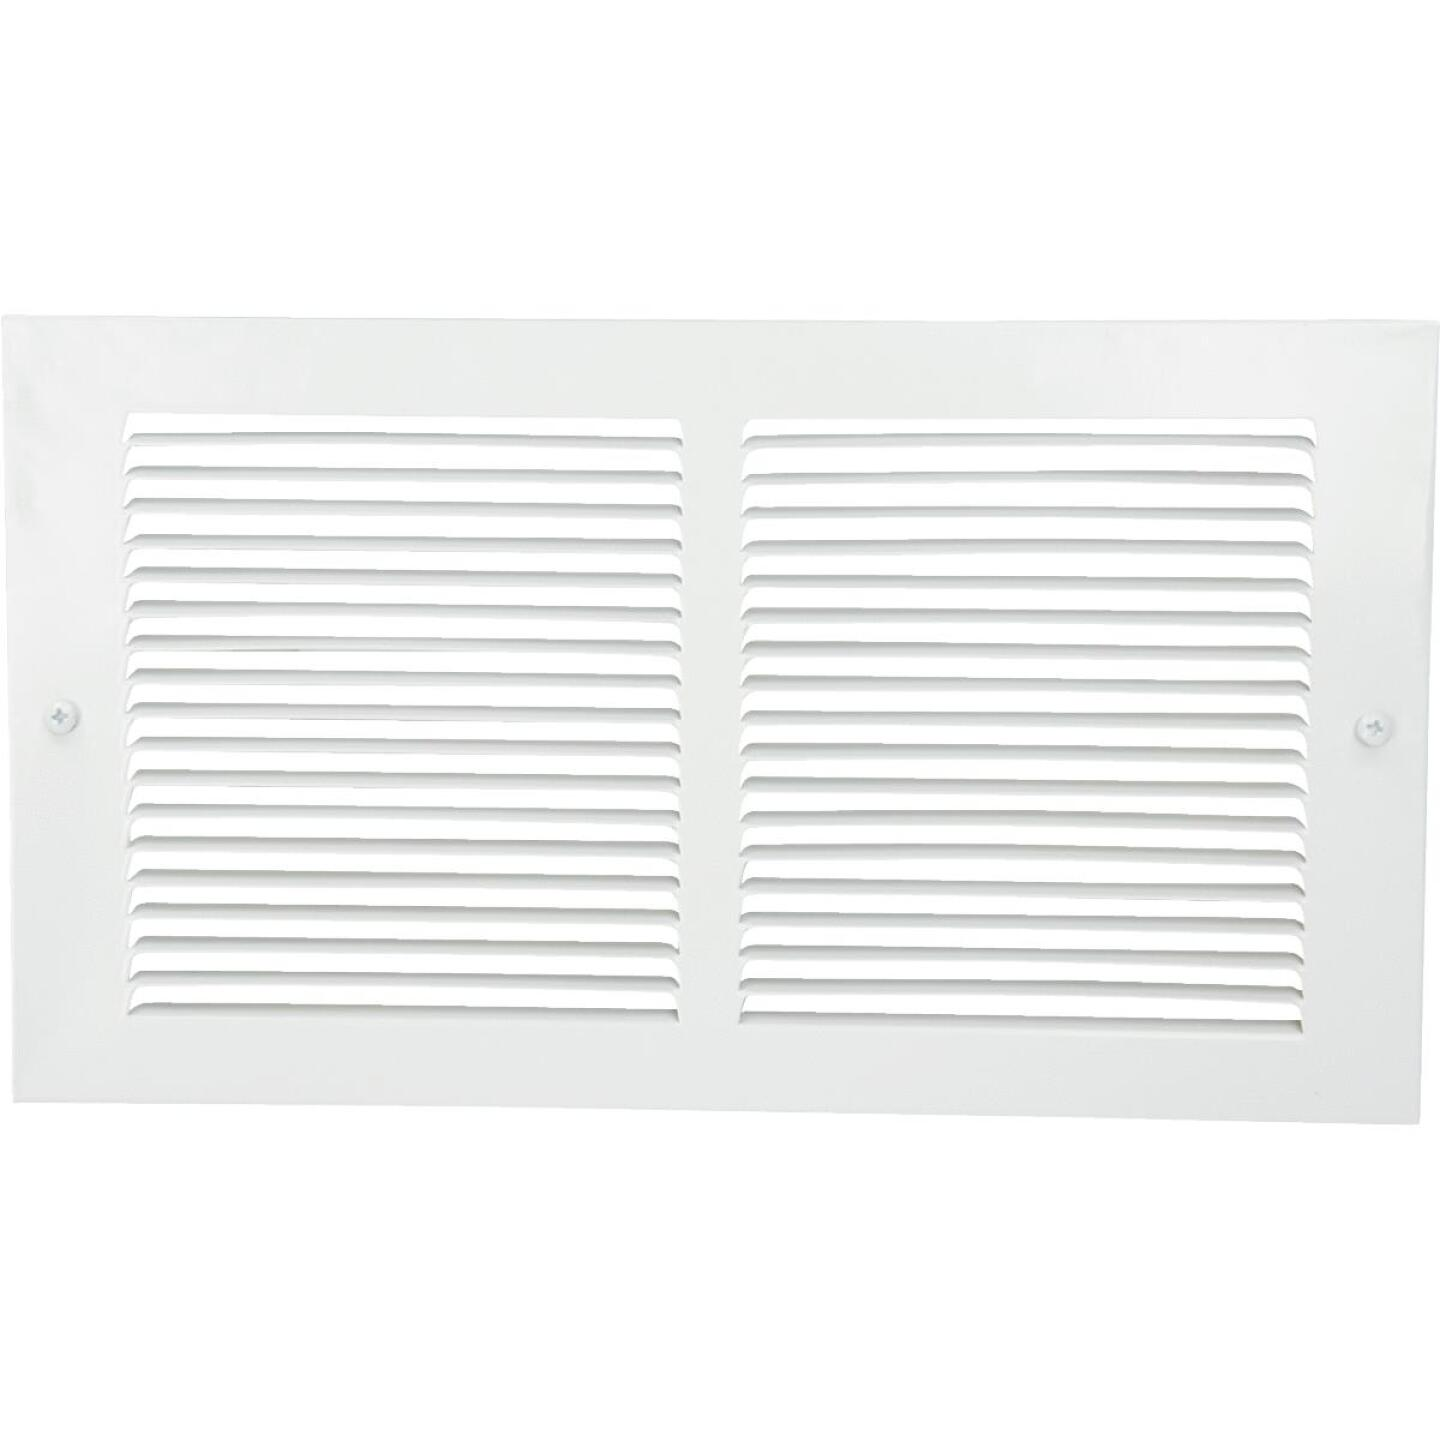 Home Impressions 6 In. x 12 In. White Steel Baseboard Grille Image 2